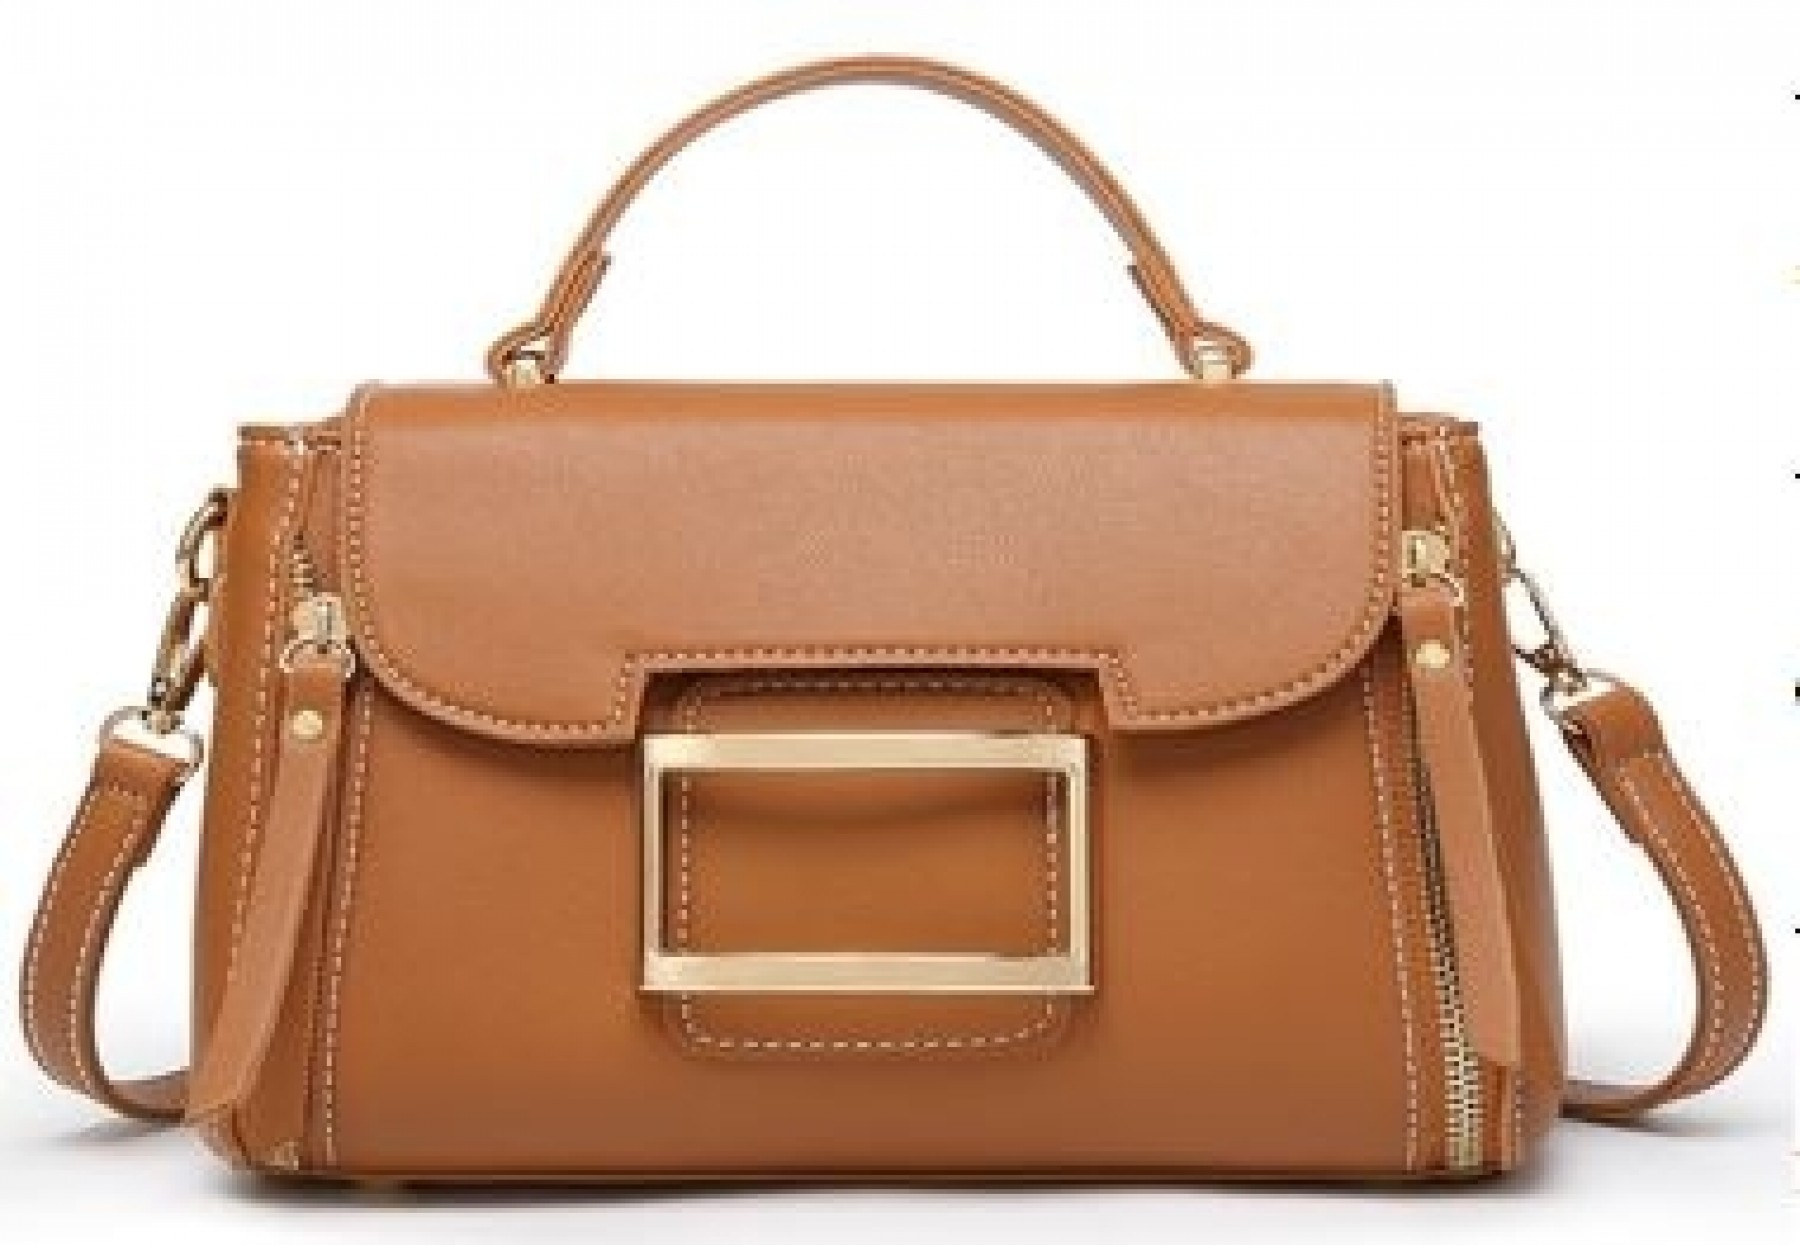 SZ14-LH2-16353- Women's Classic Leather Carry and Crossbody Bag (Brown)